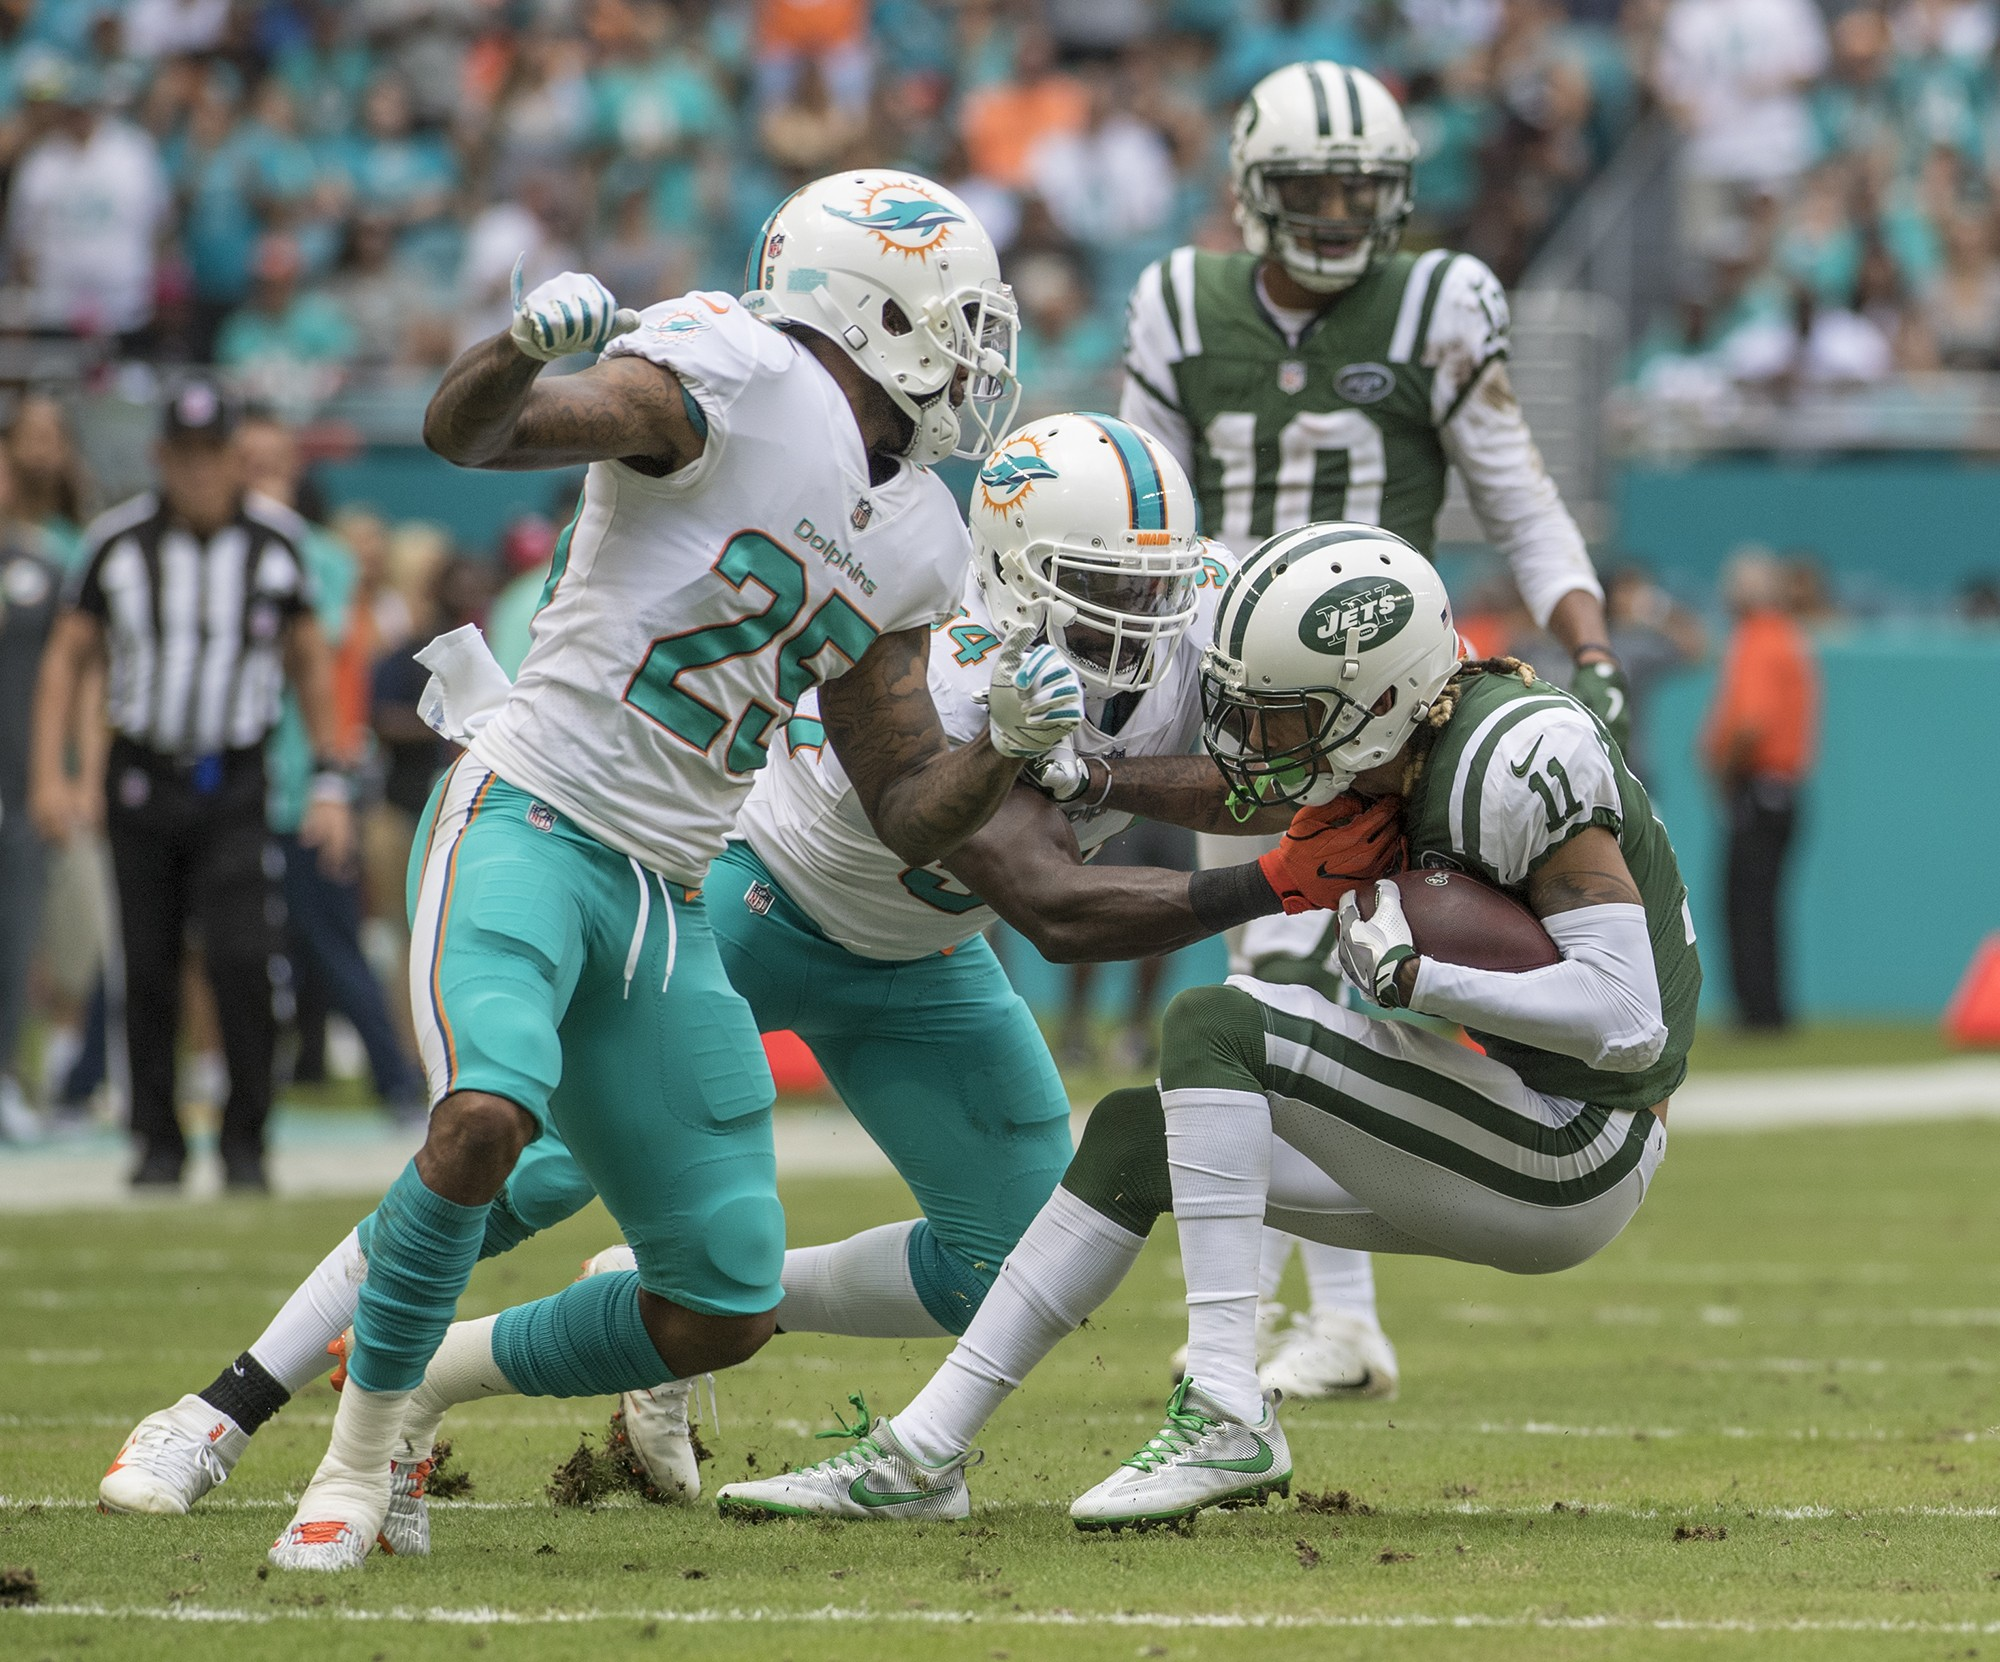 Miami Dolphins cornerback Xavien Howard (25) and Miami Dolphins outside linebacker Lawrence Timmons (94) make a stop on New York Jets wide receiver Robby Anderson (11) during 1st half play of an NFL football game on Sunday, Oct. 22, 2017, in Miami Gardens, Fla. The Miami Dolphins went on to defeat the New York Jets 31-28. (Donald Edgar/El Latino Digital)